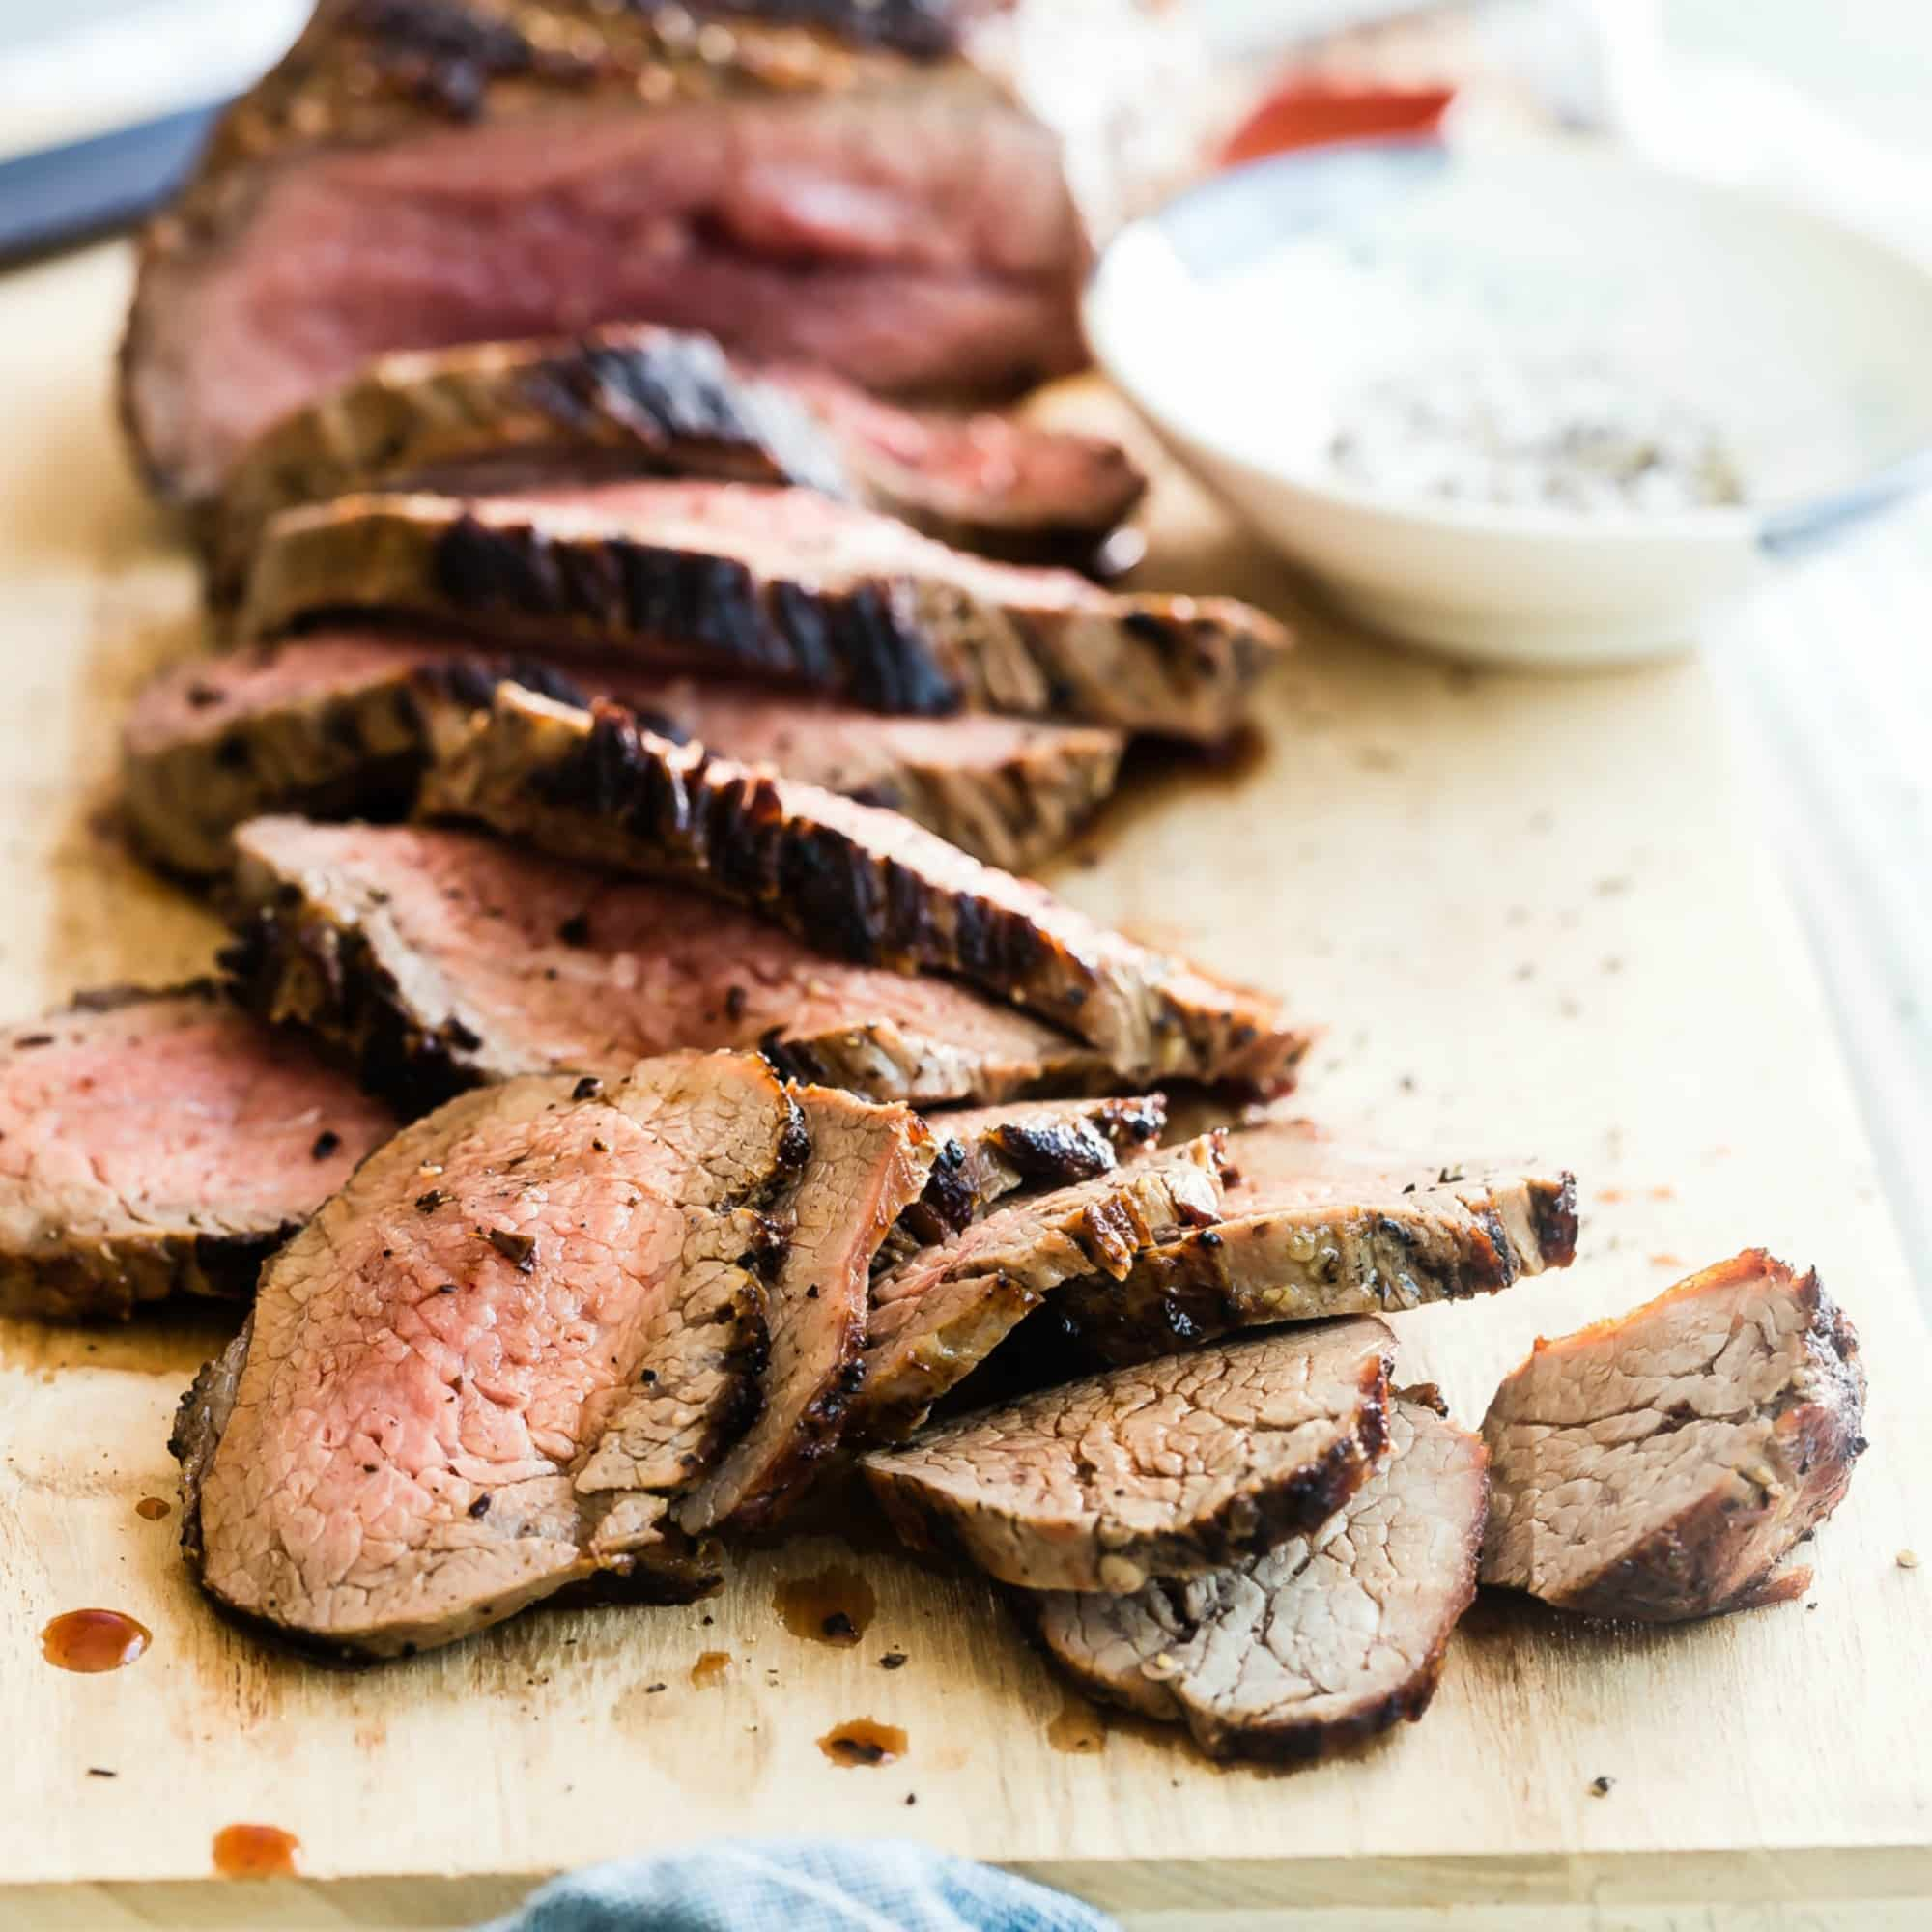 Today I'll let you in on a California secret: The humble tri-tip. Part steak, part roast, and totally, absolutely, 100% delicious. This little-known cut of meat that's sure to be the next big thing at your summer barbecues. Most of all, this might be the best, easiest tri tip recipe out there.